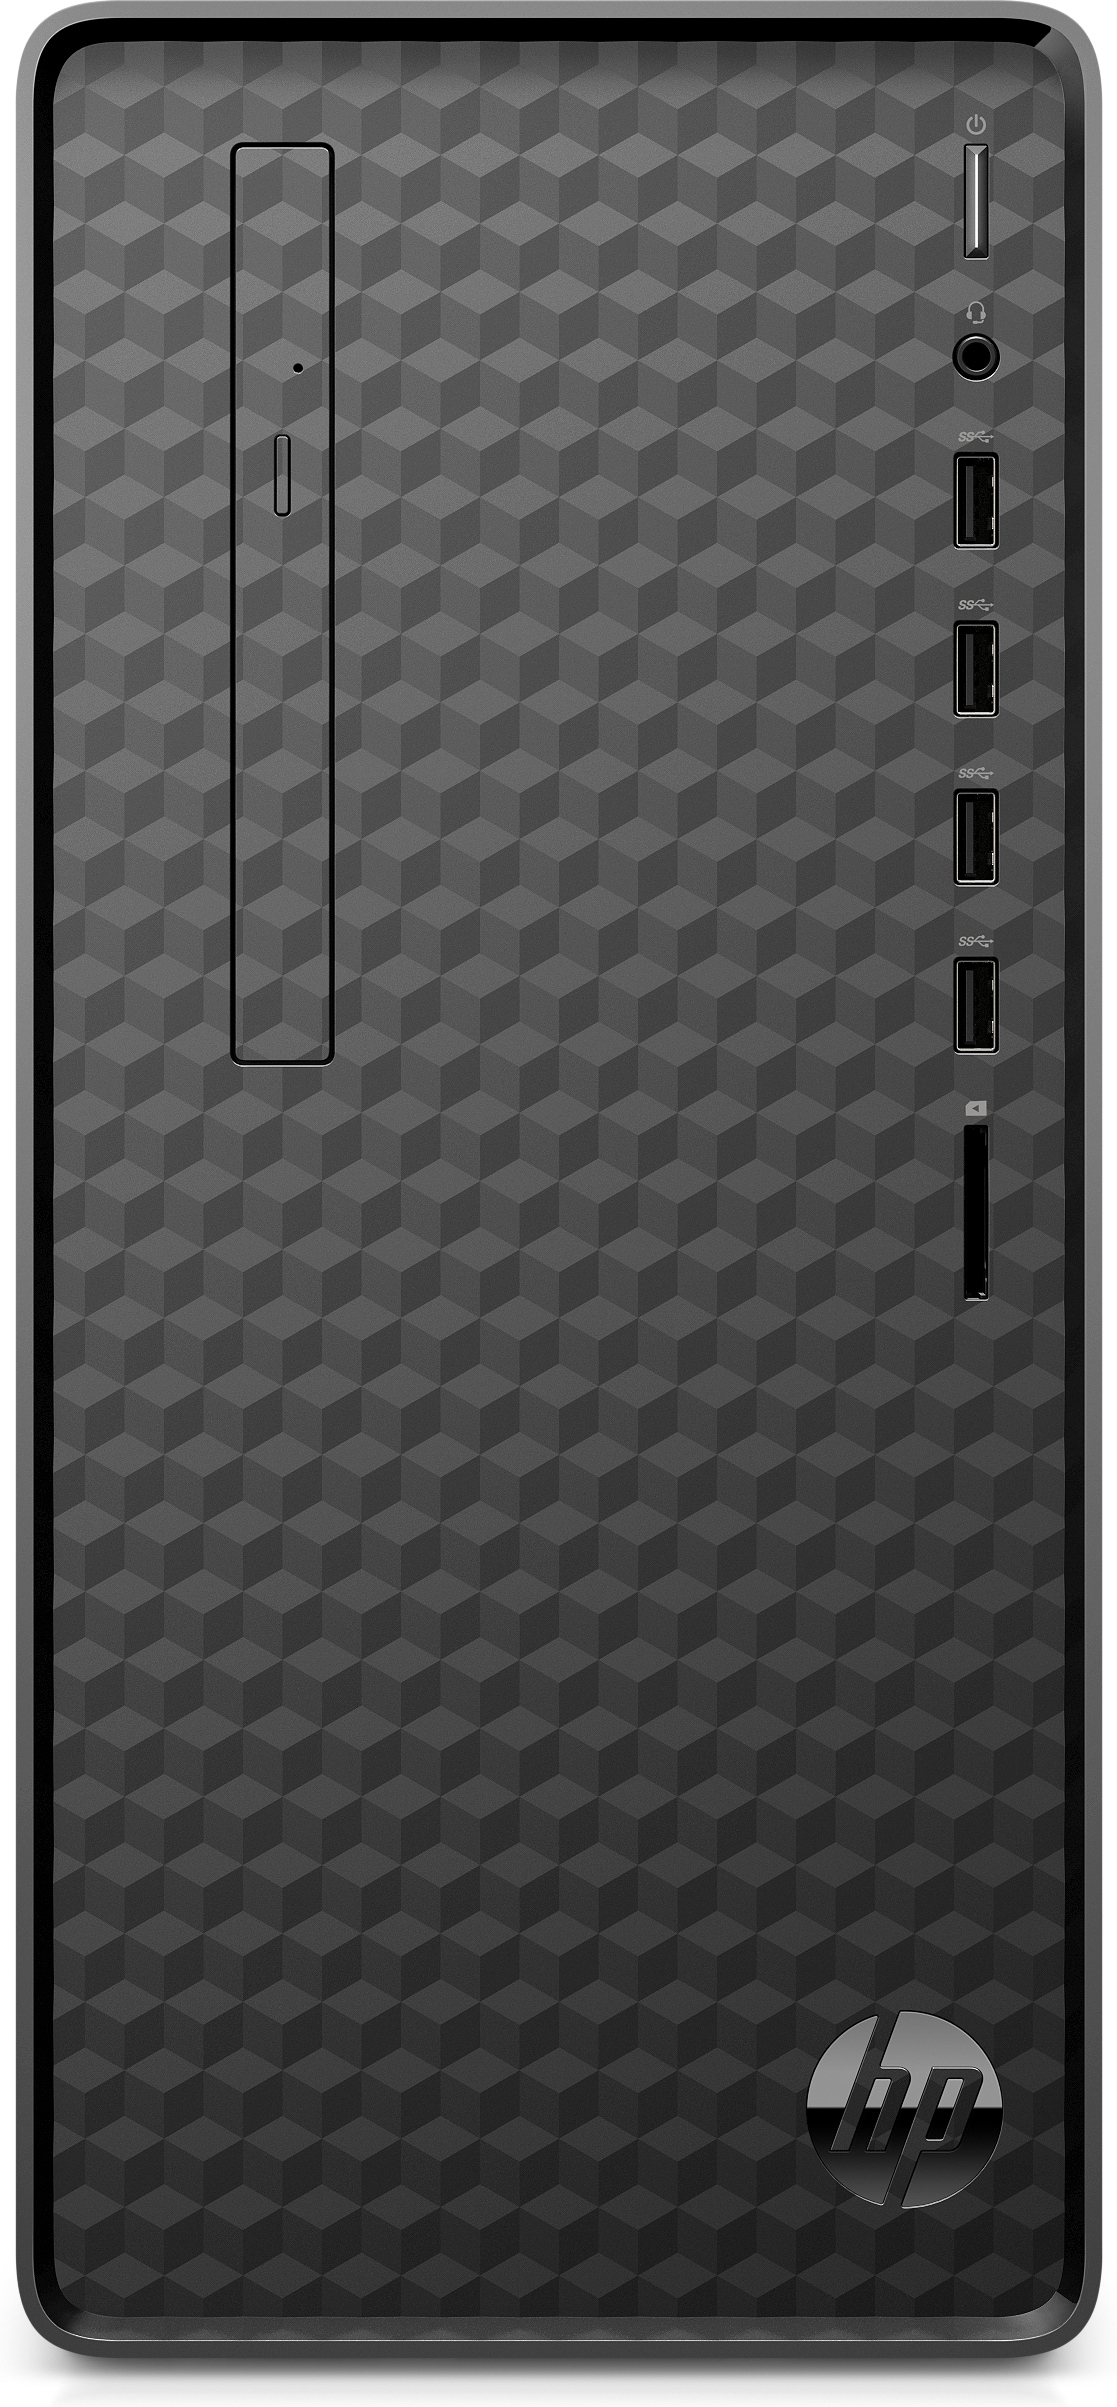 HP Desktop M01-F0000ng black